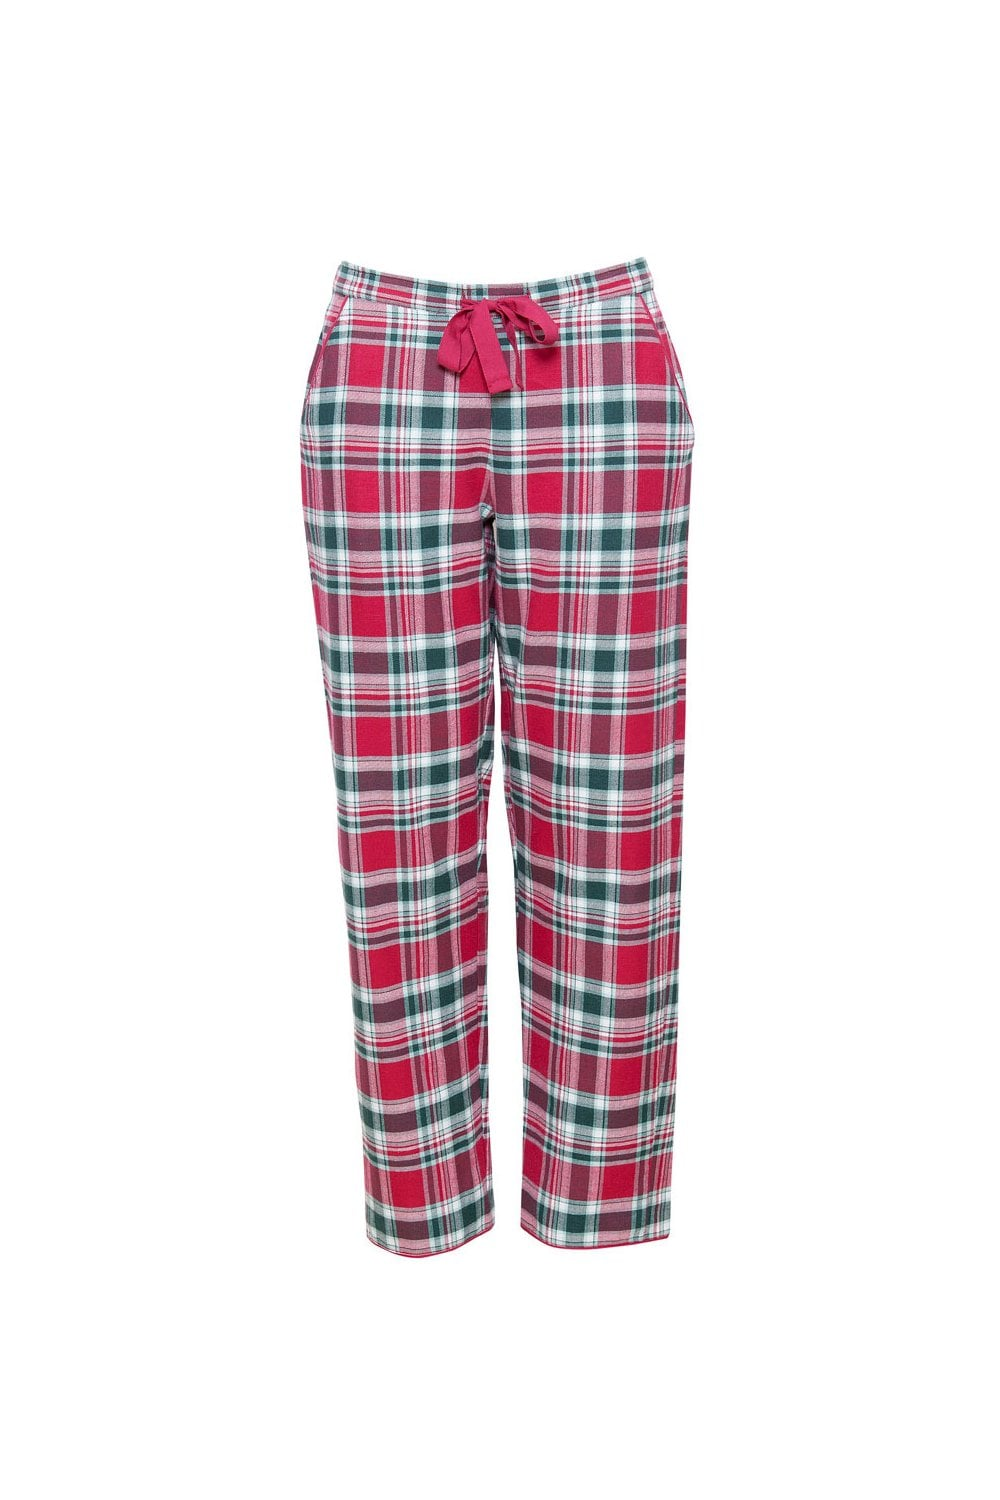 Cyberjammies Holly Check Brushed Pyjama Trousers - Red Green ... 7447ffbad